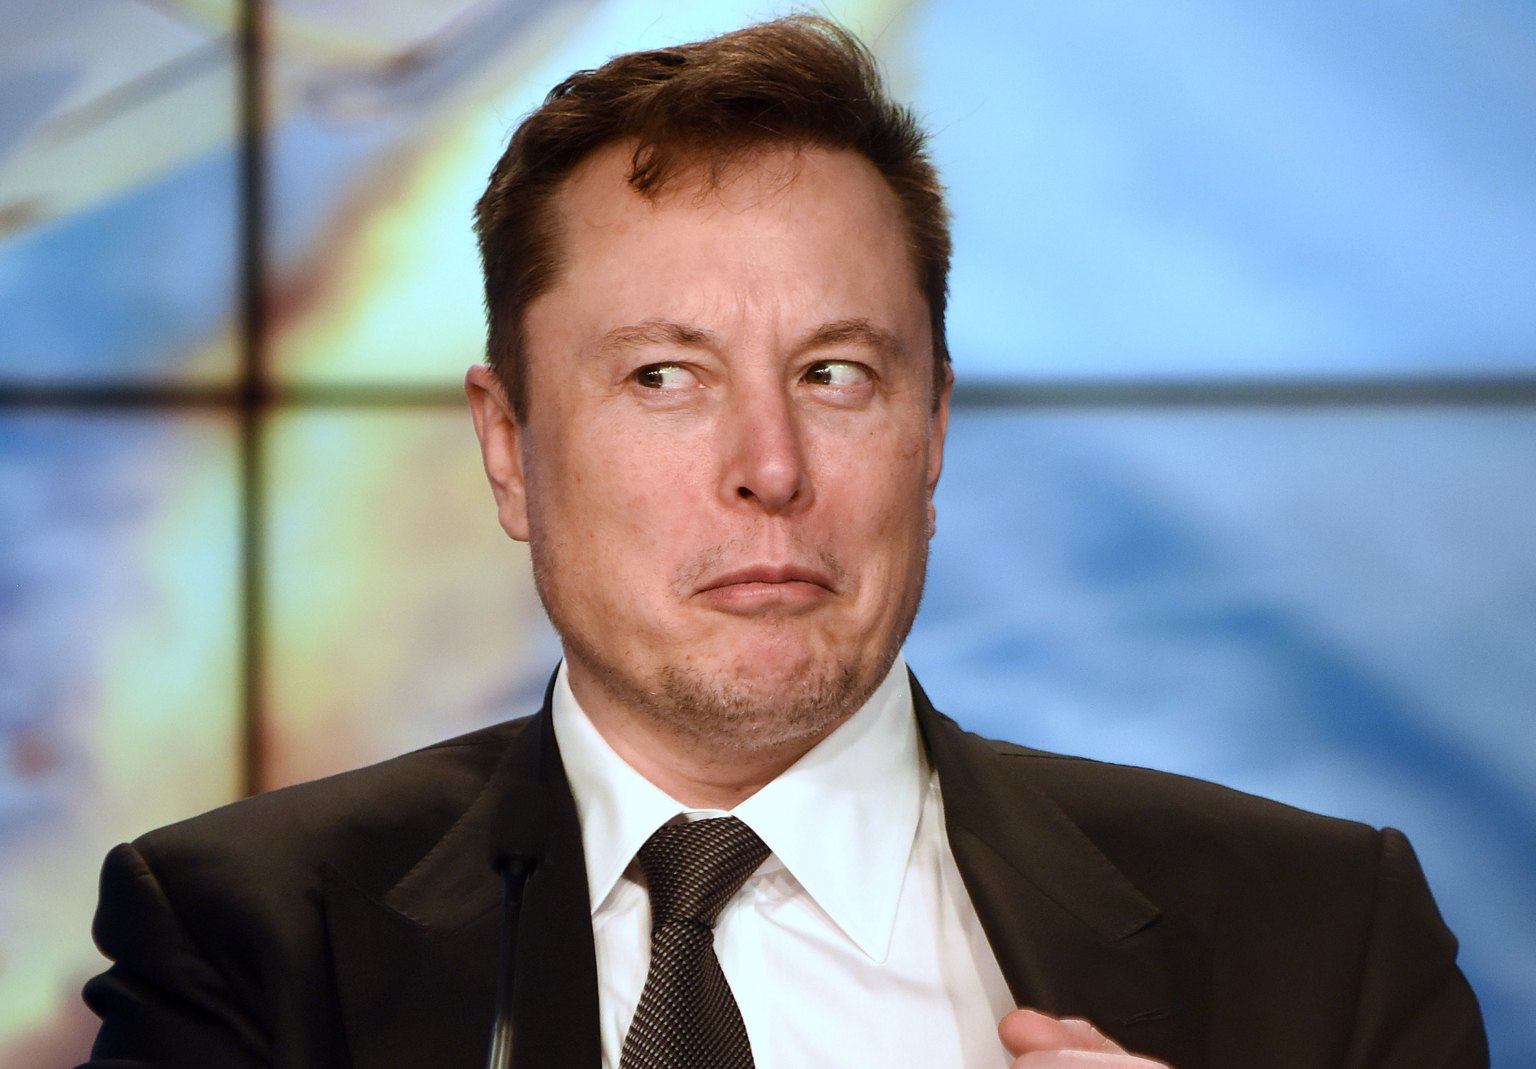 tesla stock is there a forming of new bubble